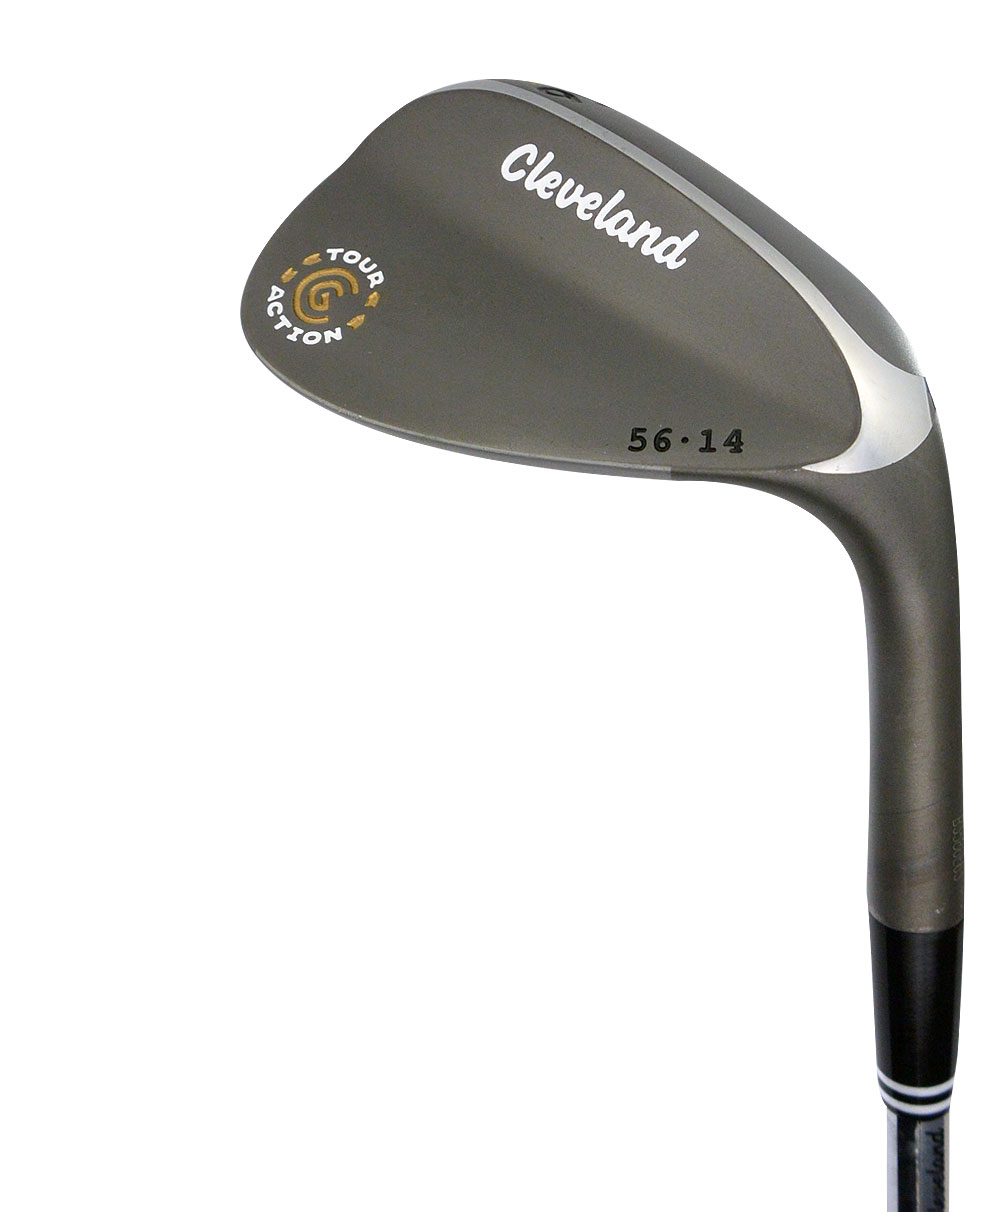 cg tour action wedge 56